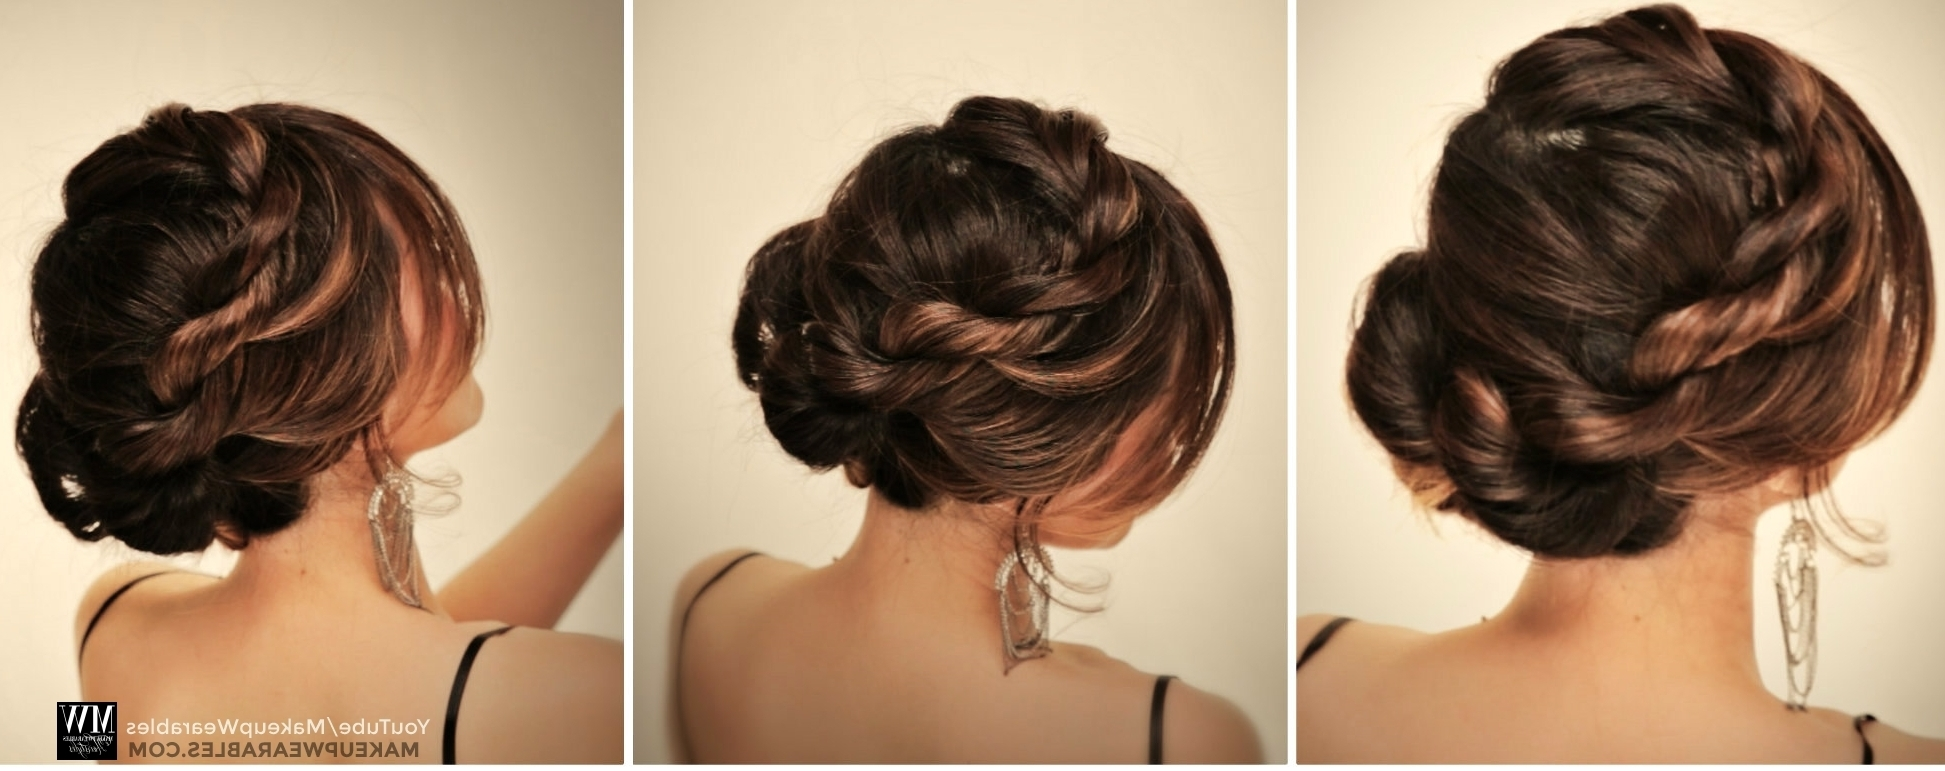 How To: 5 Amazingly Cute + Easy Hairstyles With A Simple Twist Intended For Easy Hair Updo Hairstyles (View 13 of 15)